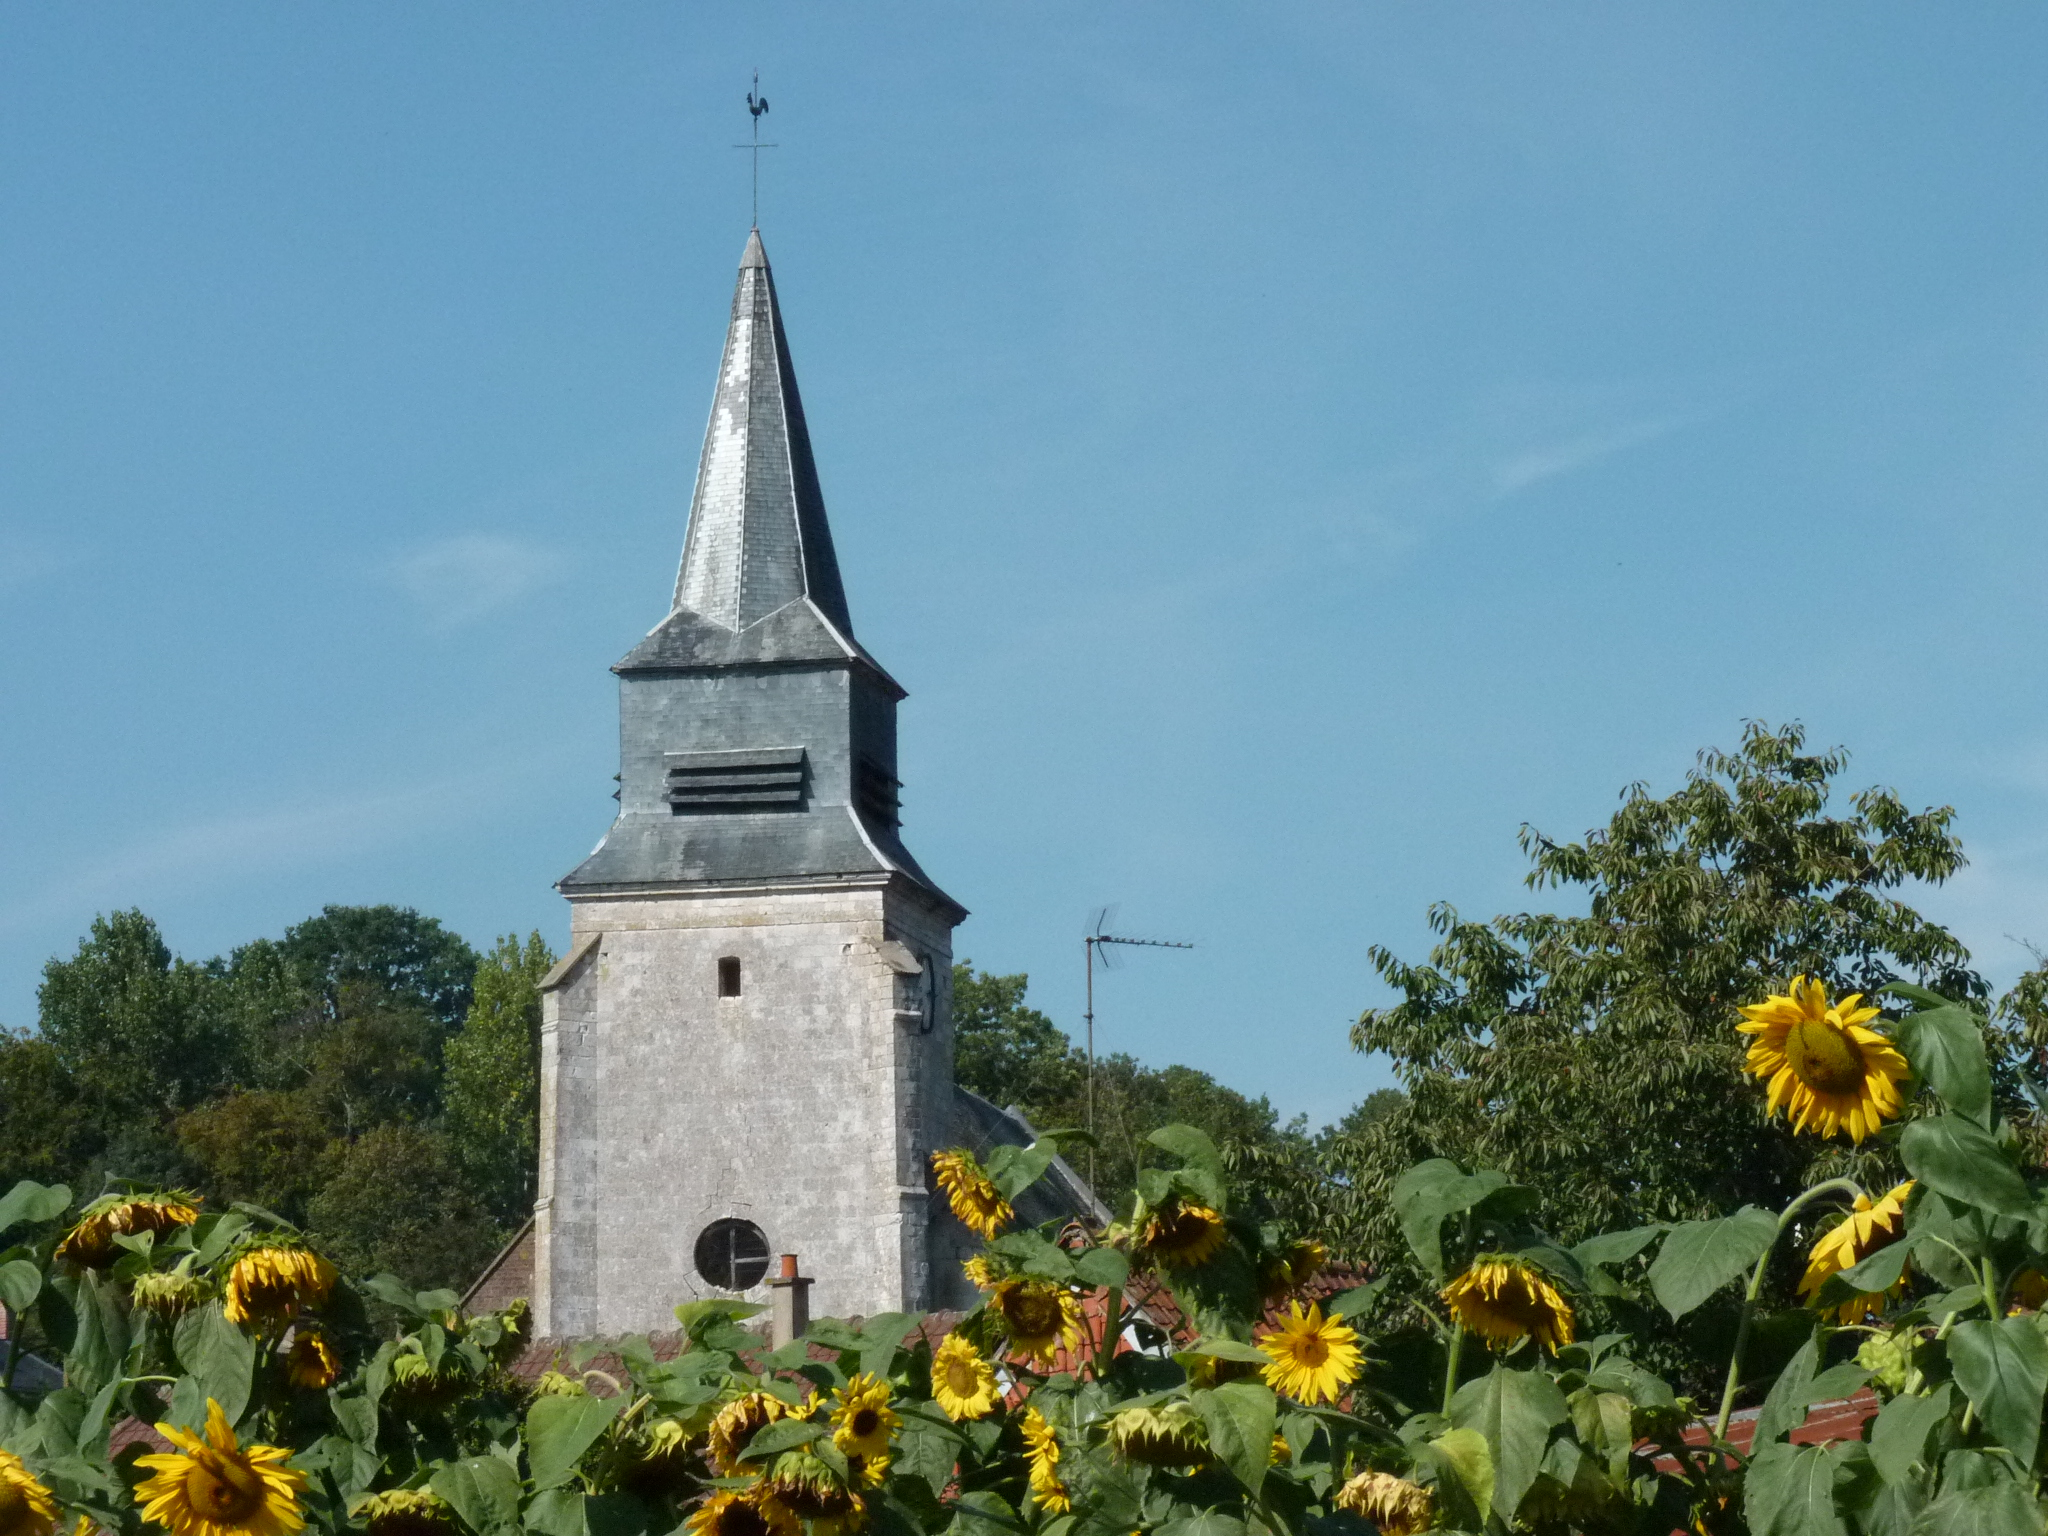 L'église de Barly